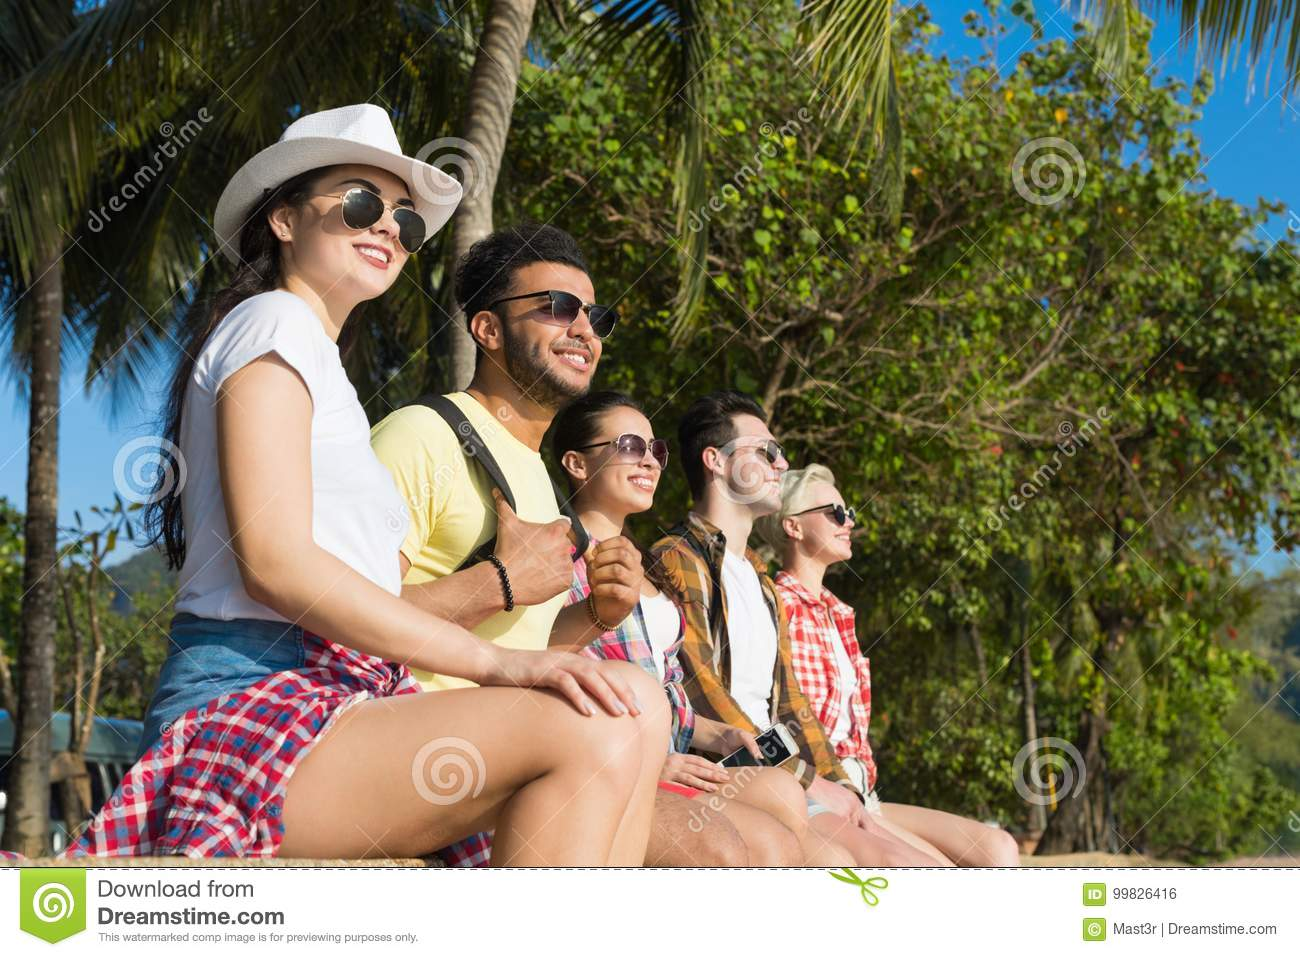 People Group Sitting Under Palm Trees In Park On Beach, Casual Friends Wear Sunglasses Happy Smiling Tourists